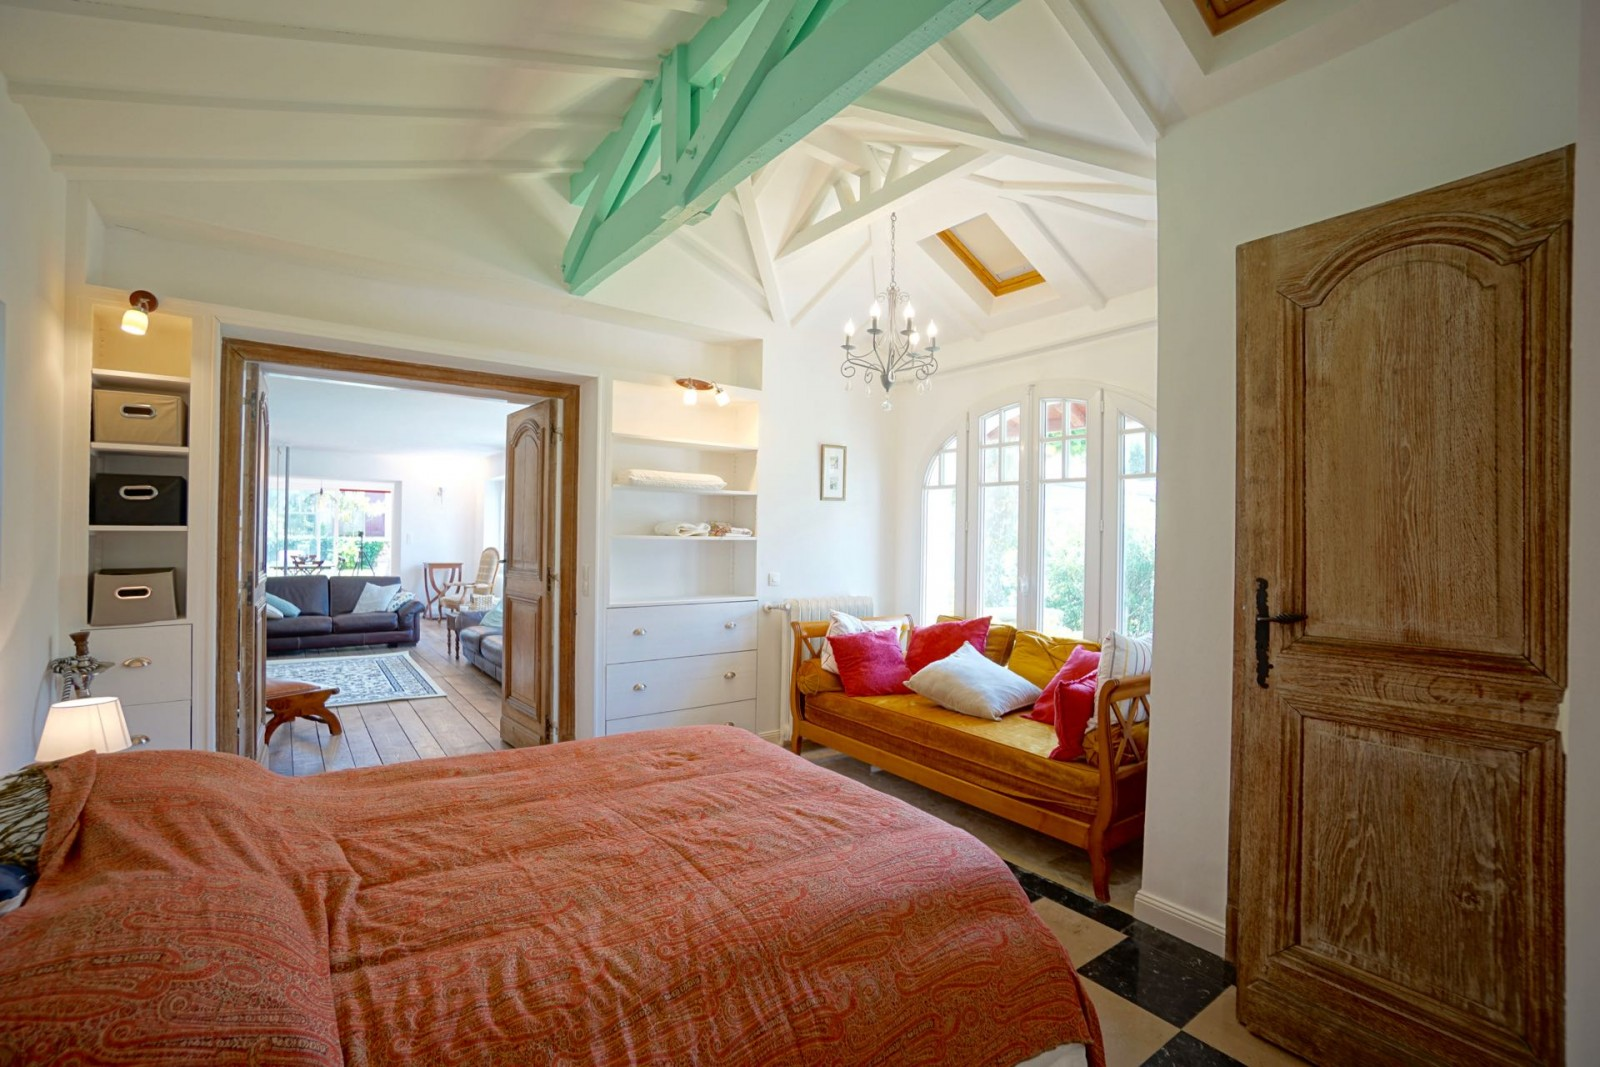 Chambre D Amour Vin Best Villa Chambre D Amour Ideas Awesome Interior Home